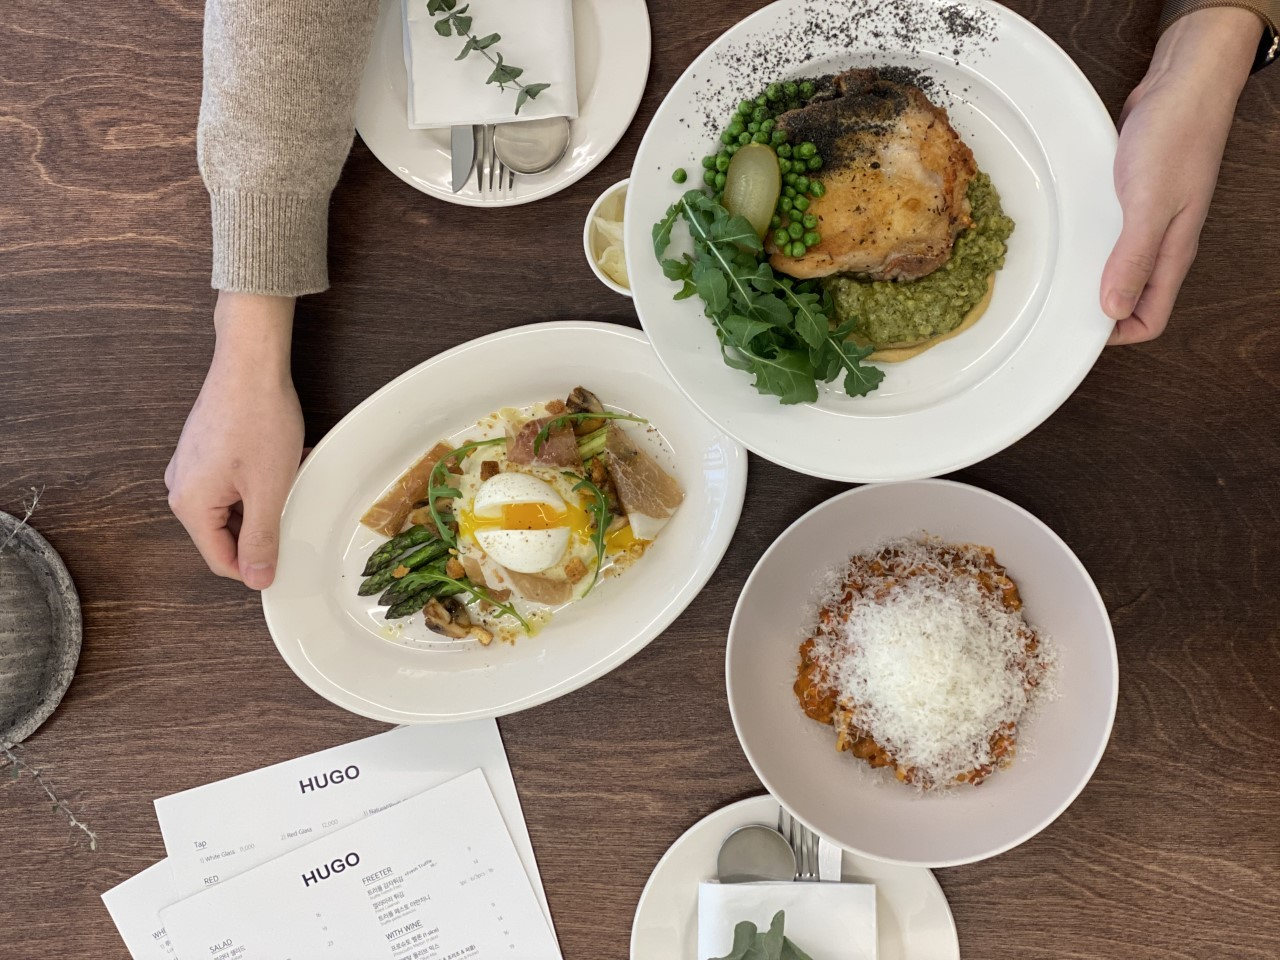 Hugo's Bourguignon Bolognese (far right), roasted herb chicken (center) and roasted asparagus and prosciutto (Photo credit: @hugo_dosan)